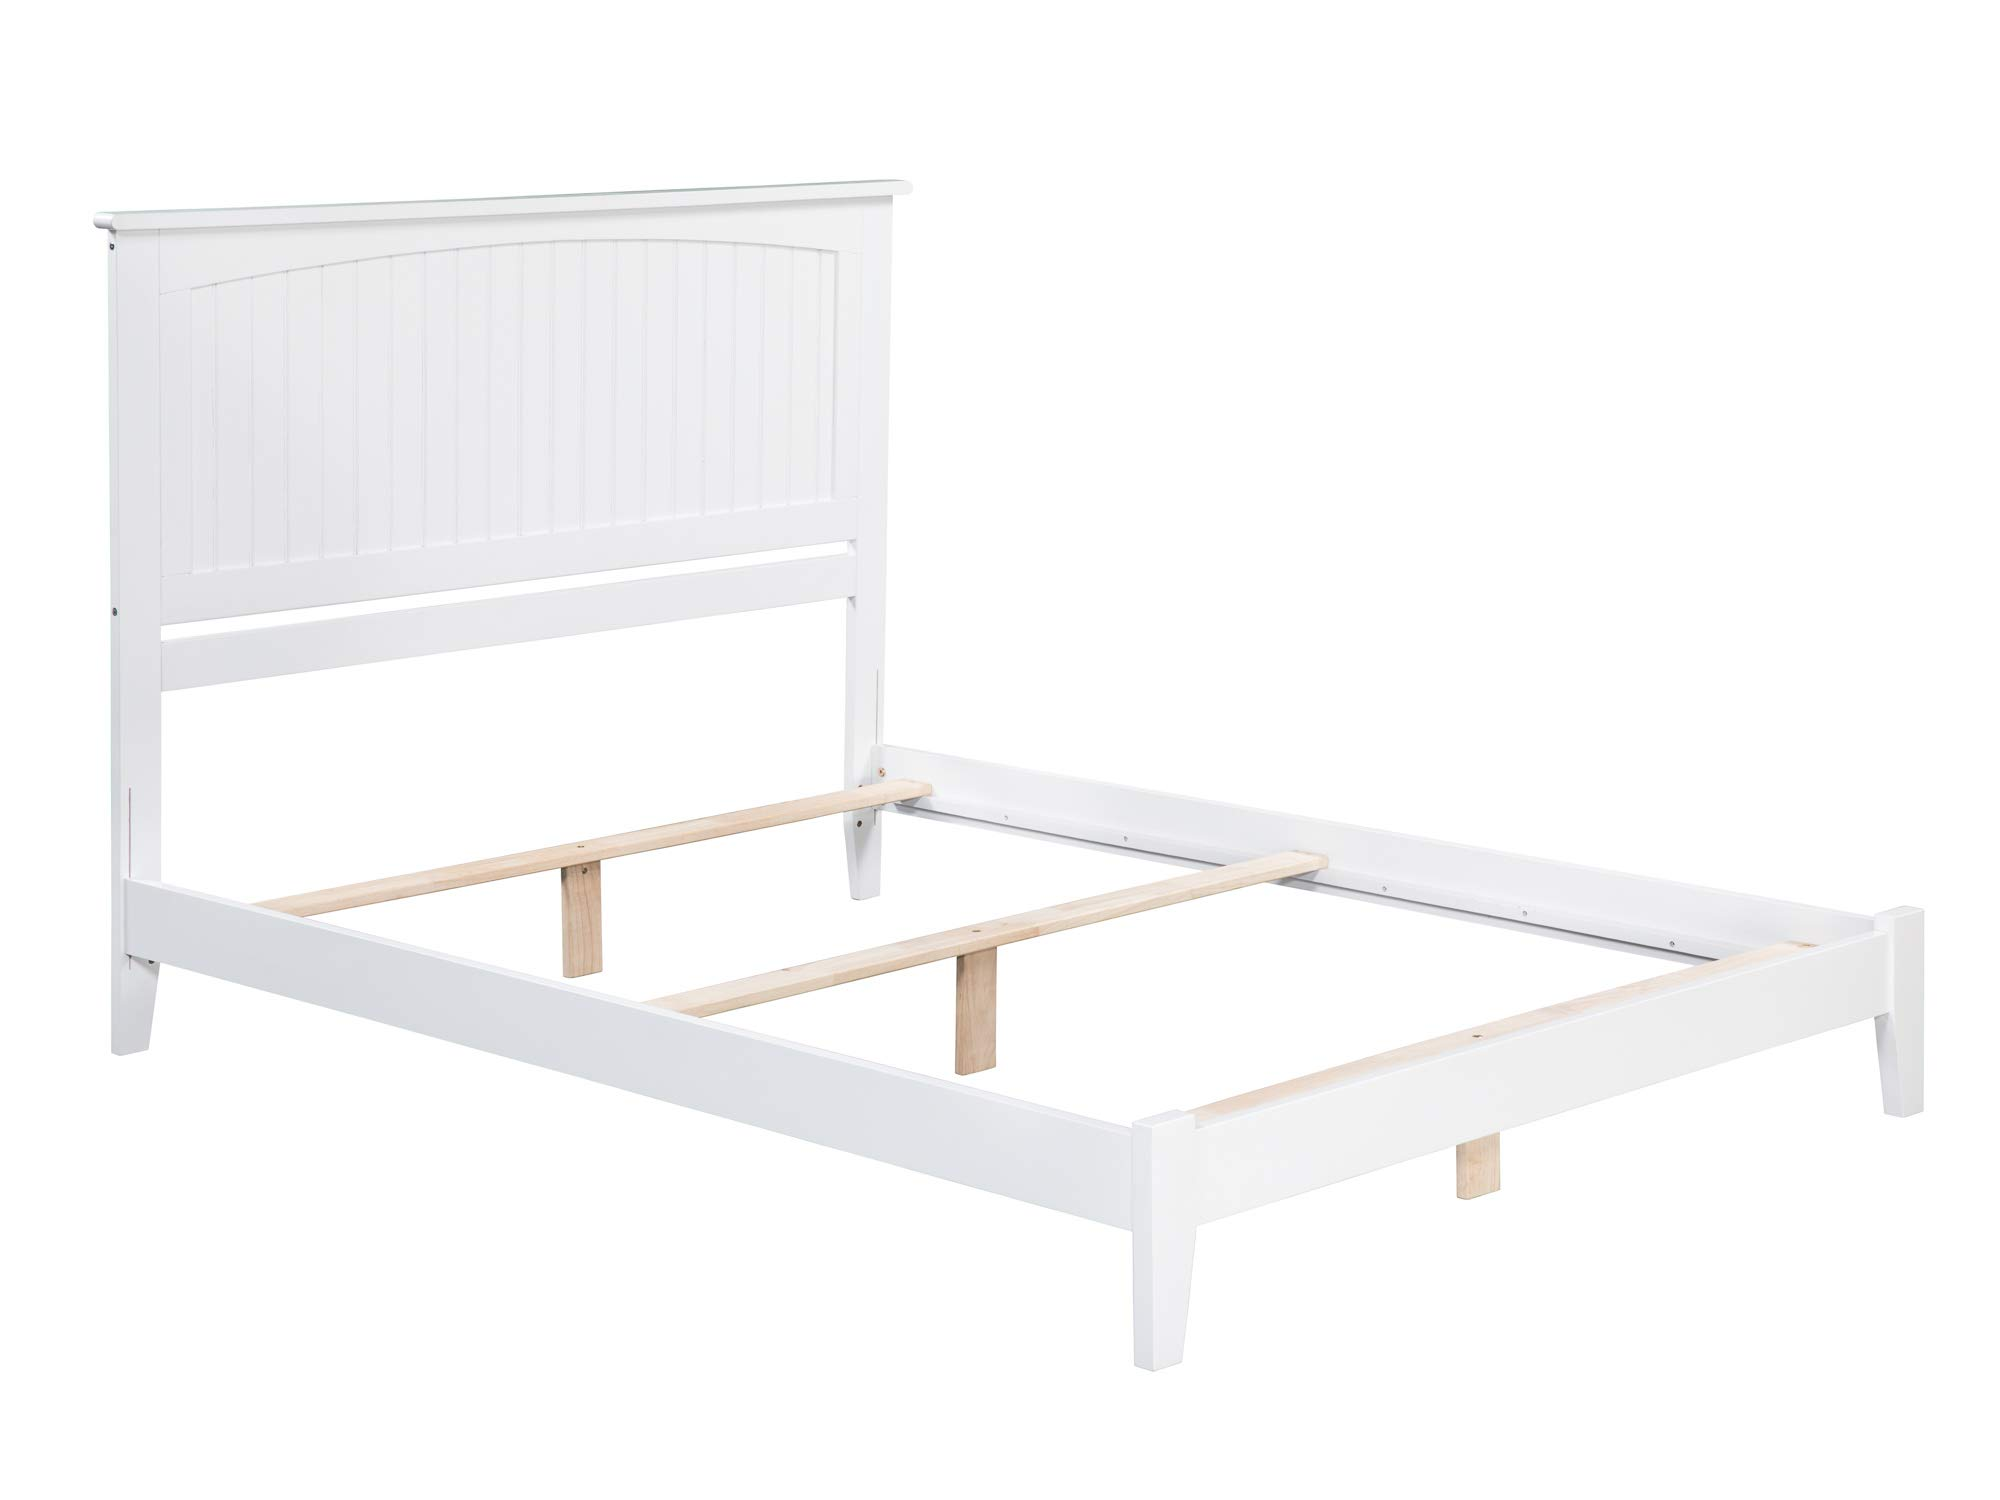 Atlantic Furniture AR8241032 Nantucket Traditional Bed, Queen, White by Atlantic Furniture